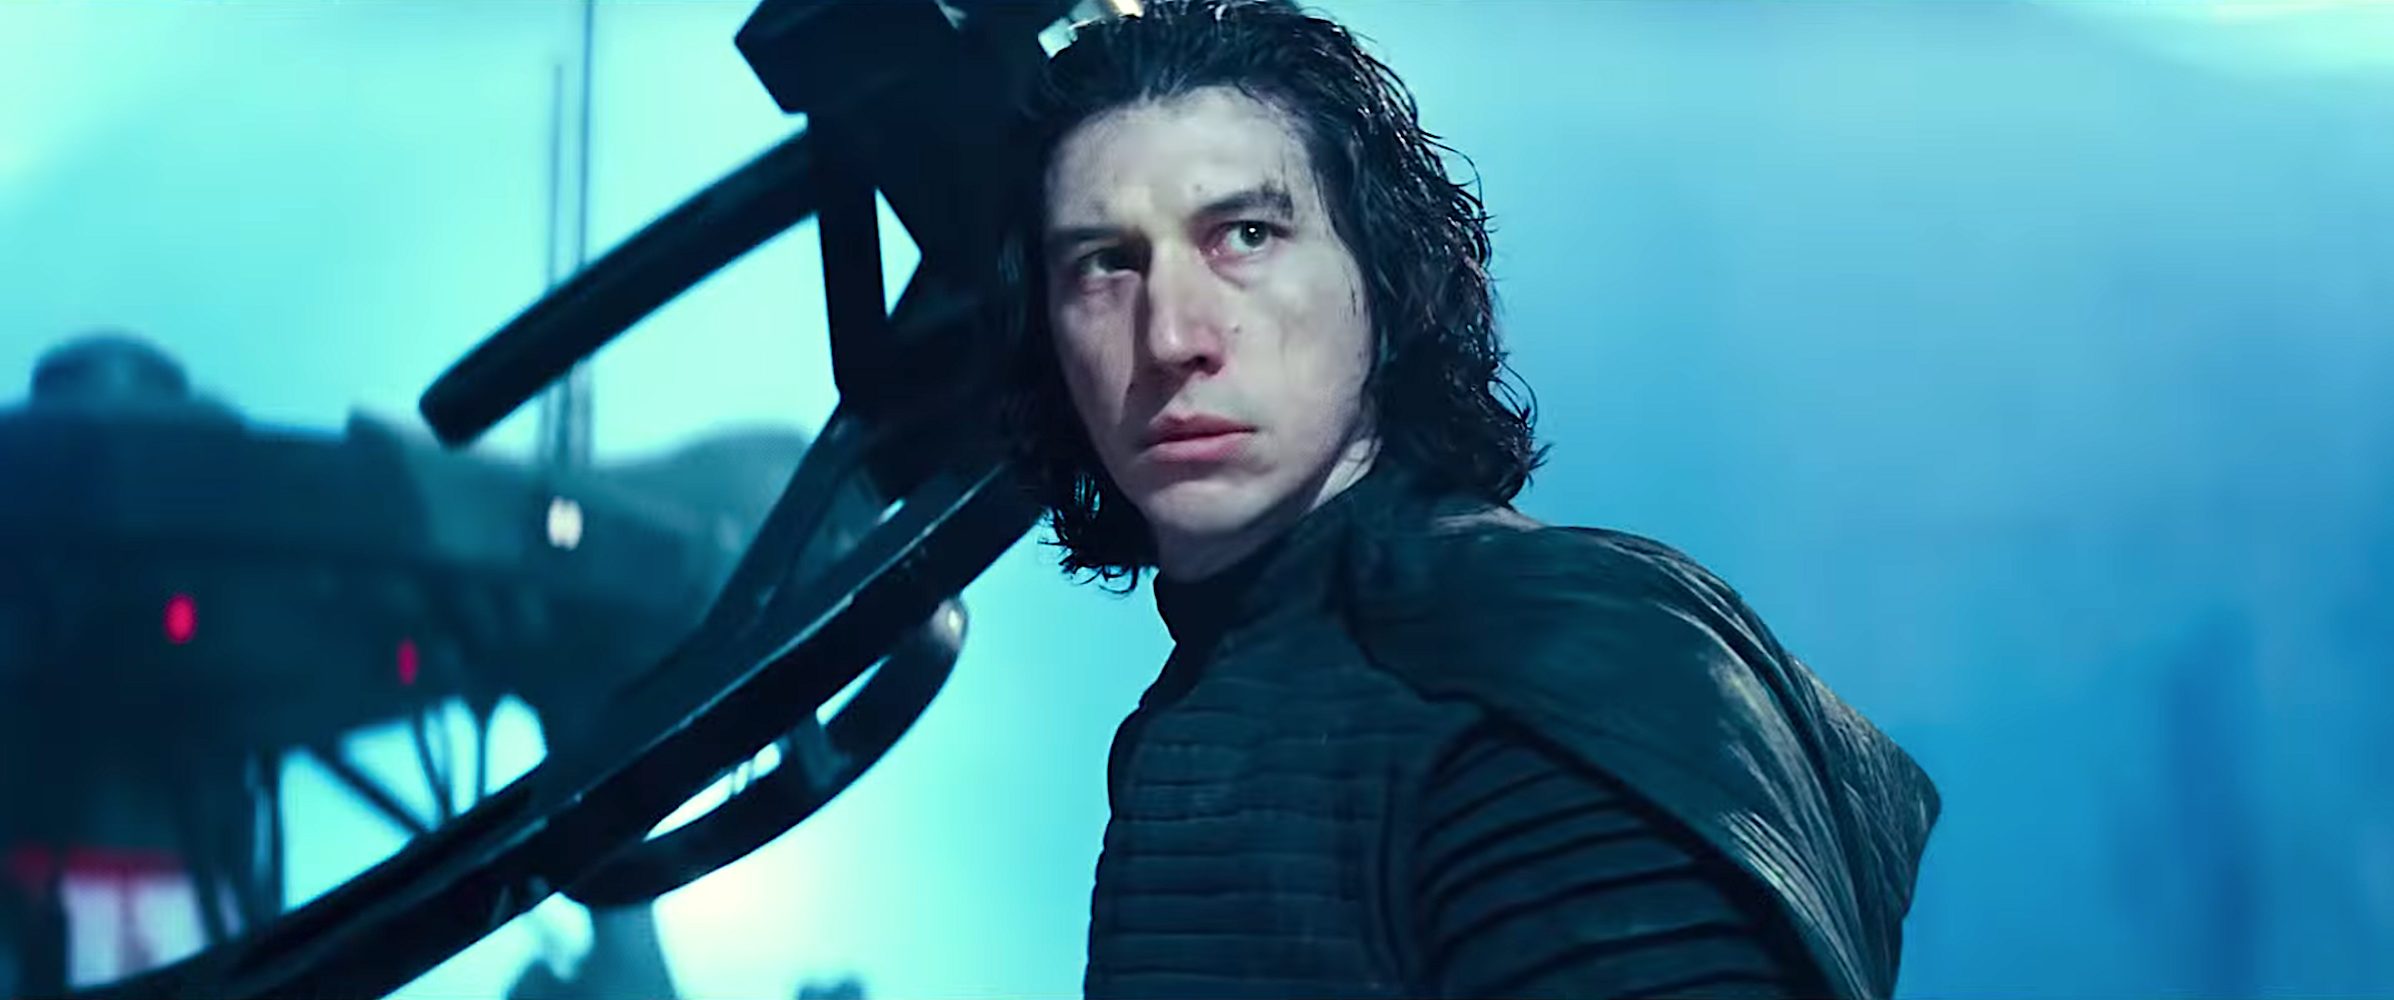 kylo-ren-the-rise-of-skywalker-star-wars-1572014978.png